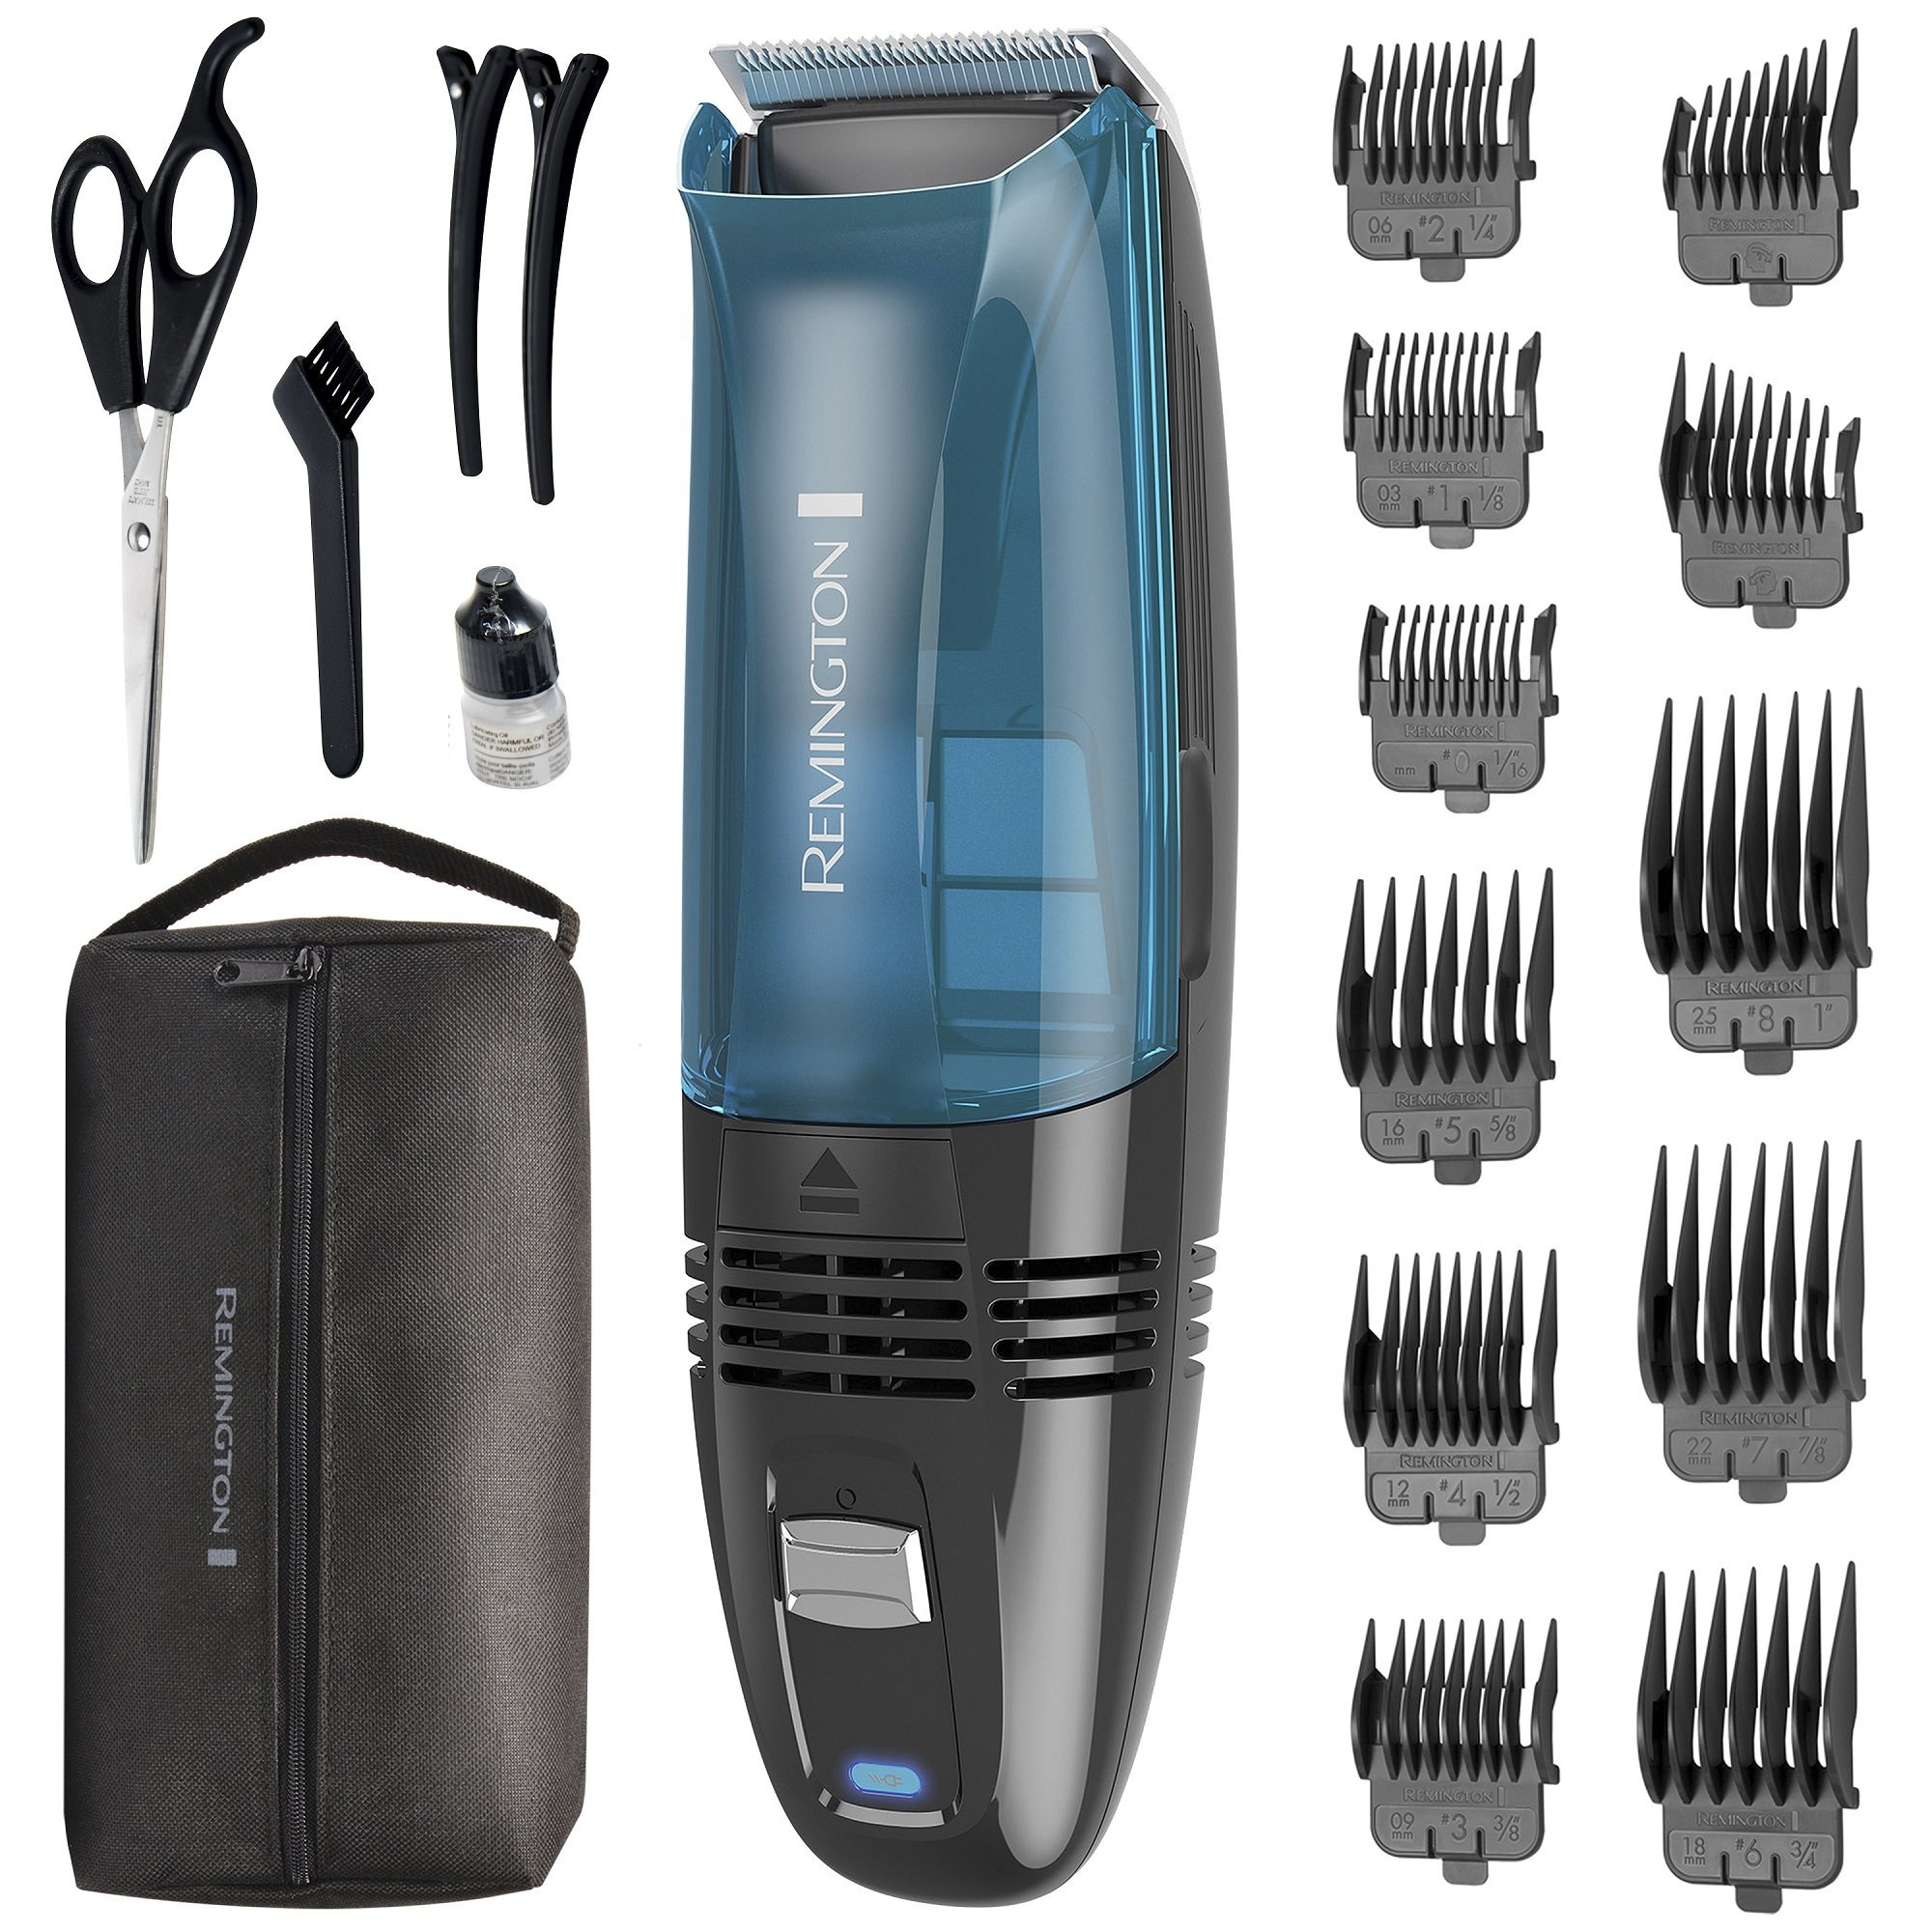 Remington HC6550 Cordless Vacuum Haircut Kit, Vacuum Trimmer, Hair Clippers, Hair Trimmer, Clippers by Remington